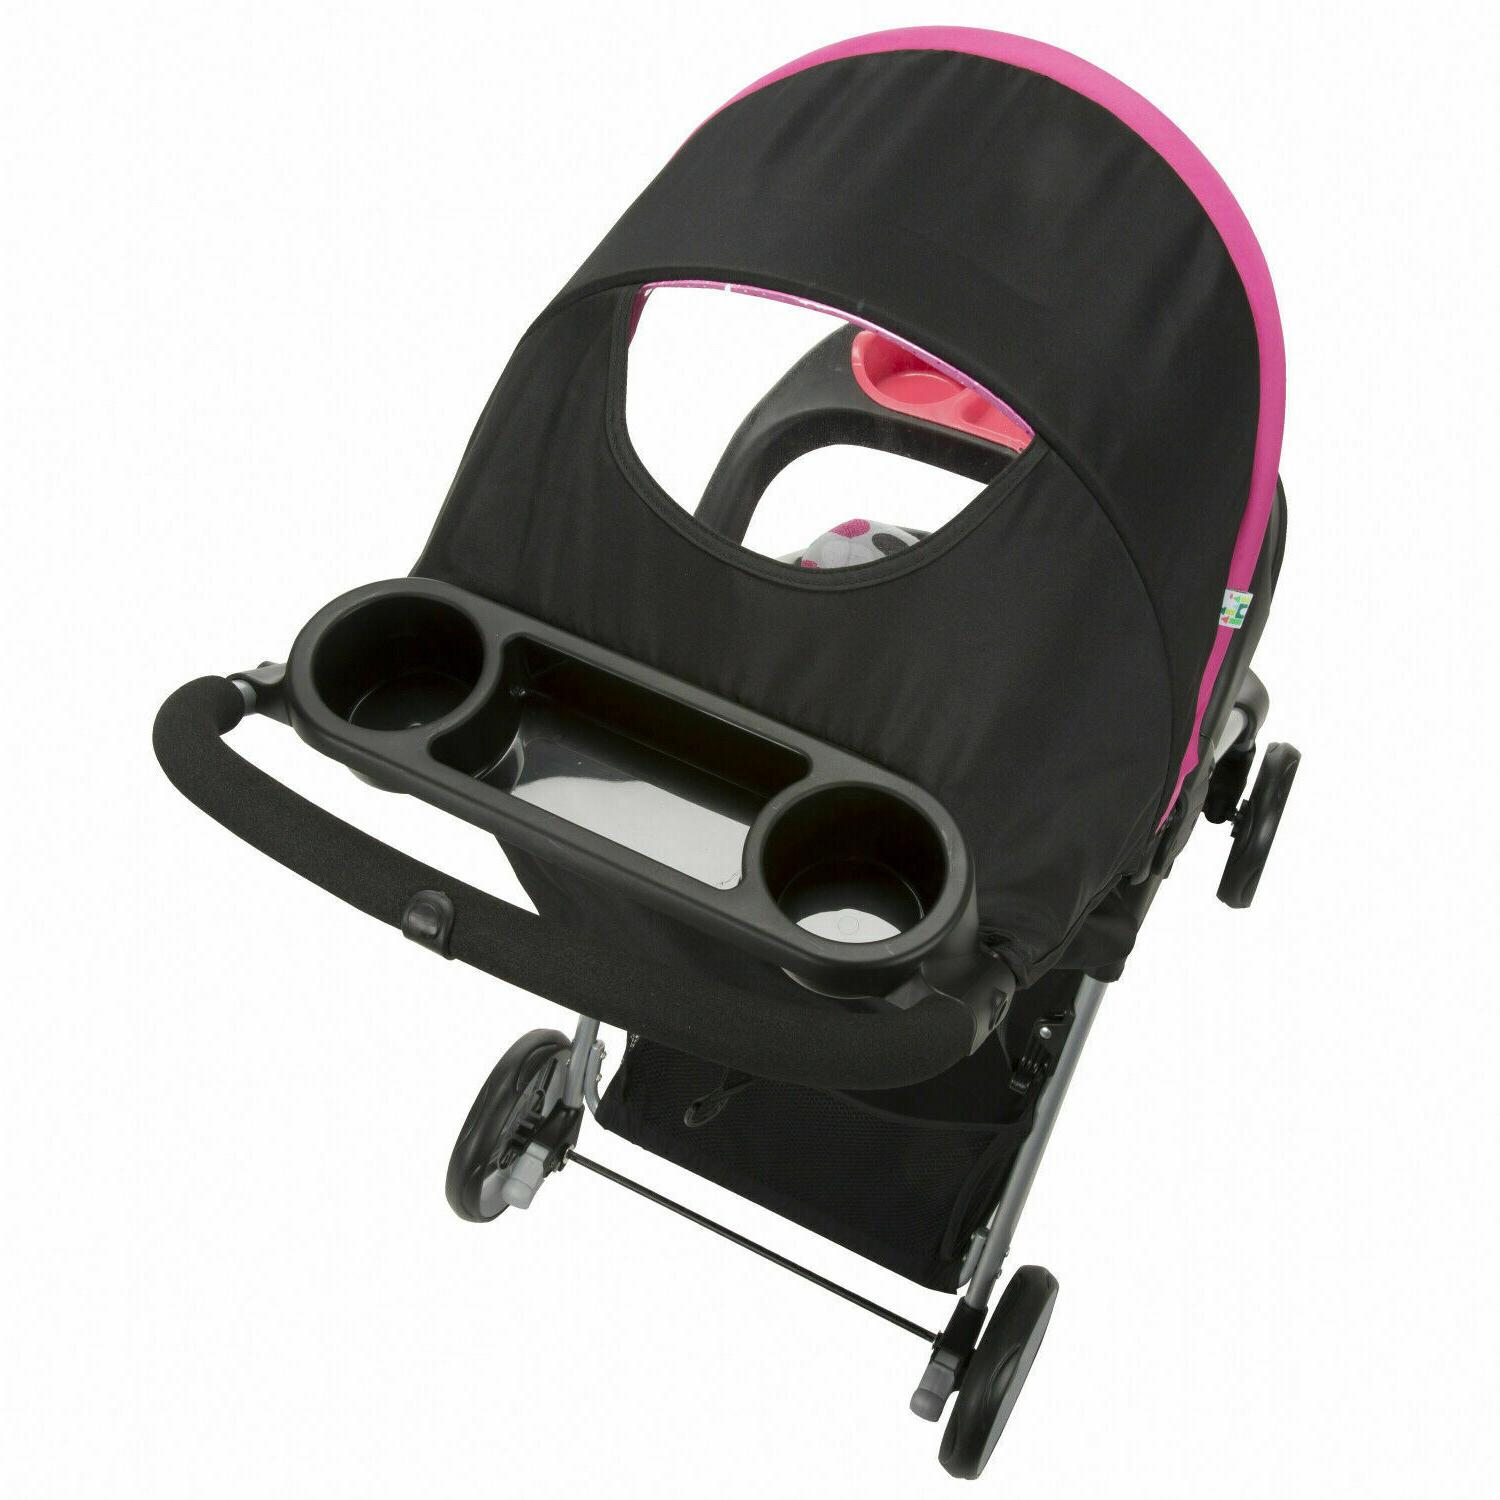 Baby Plus System Stroller Infant Combo Lightweight